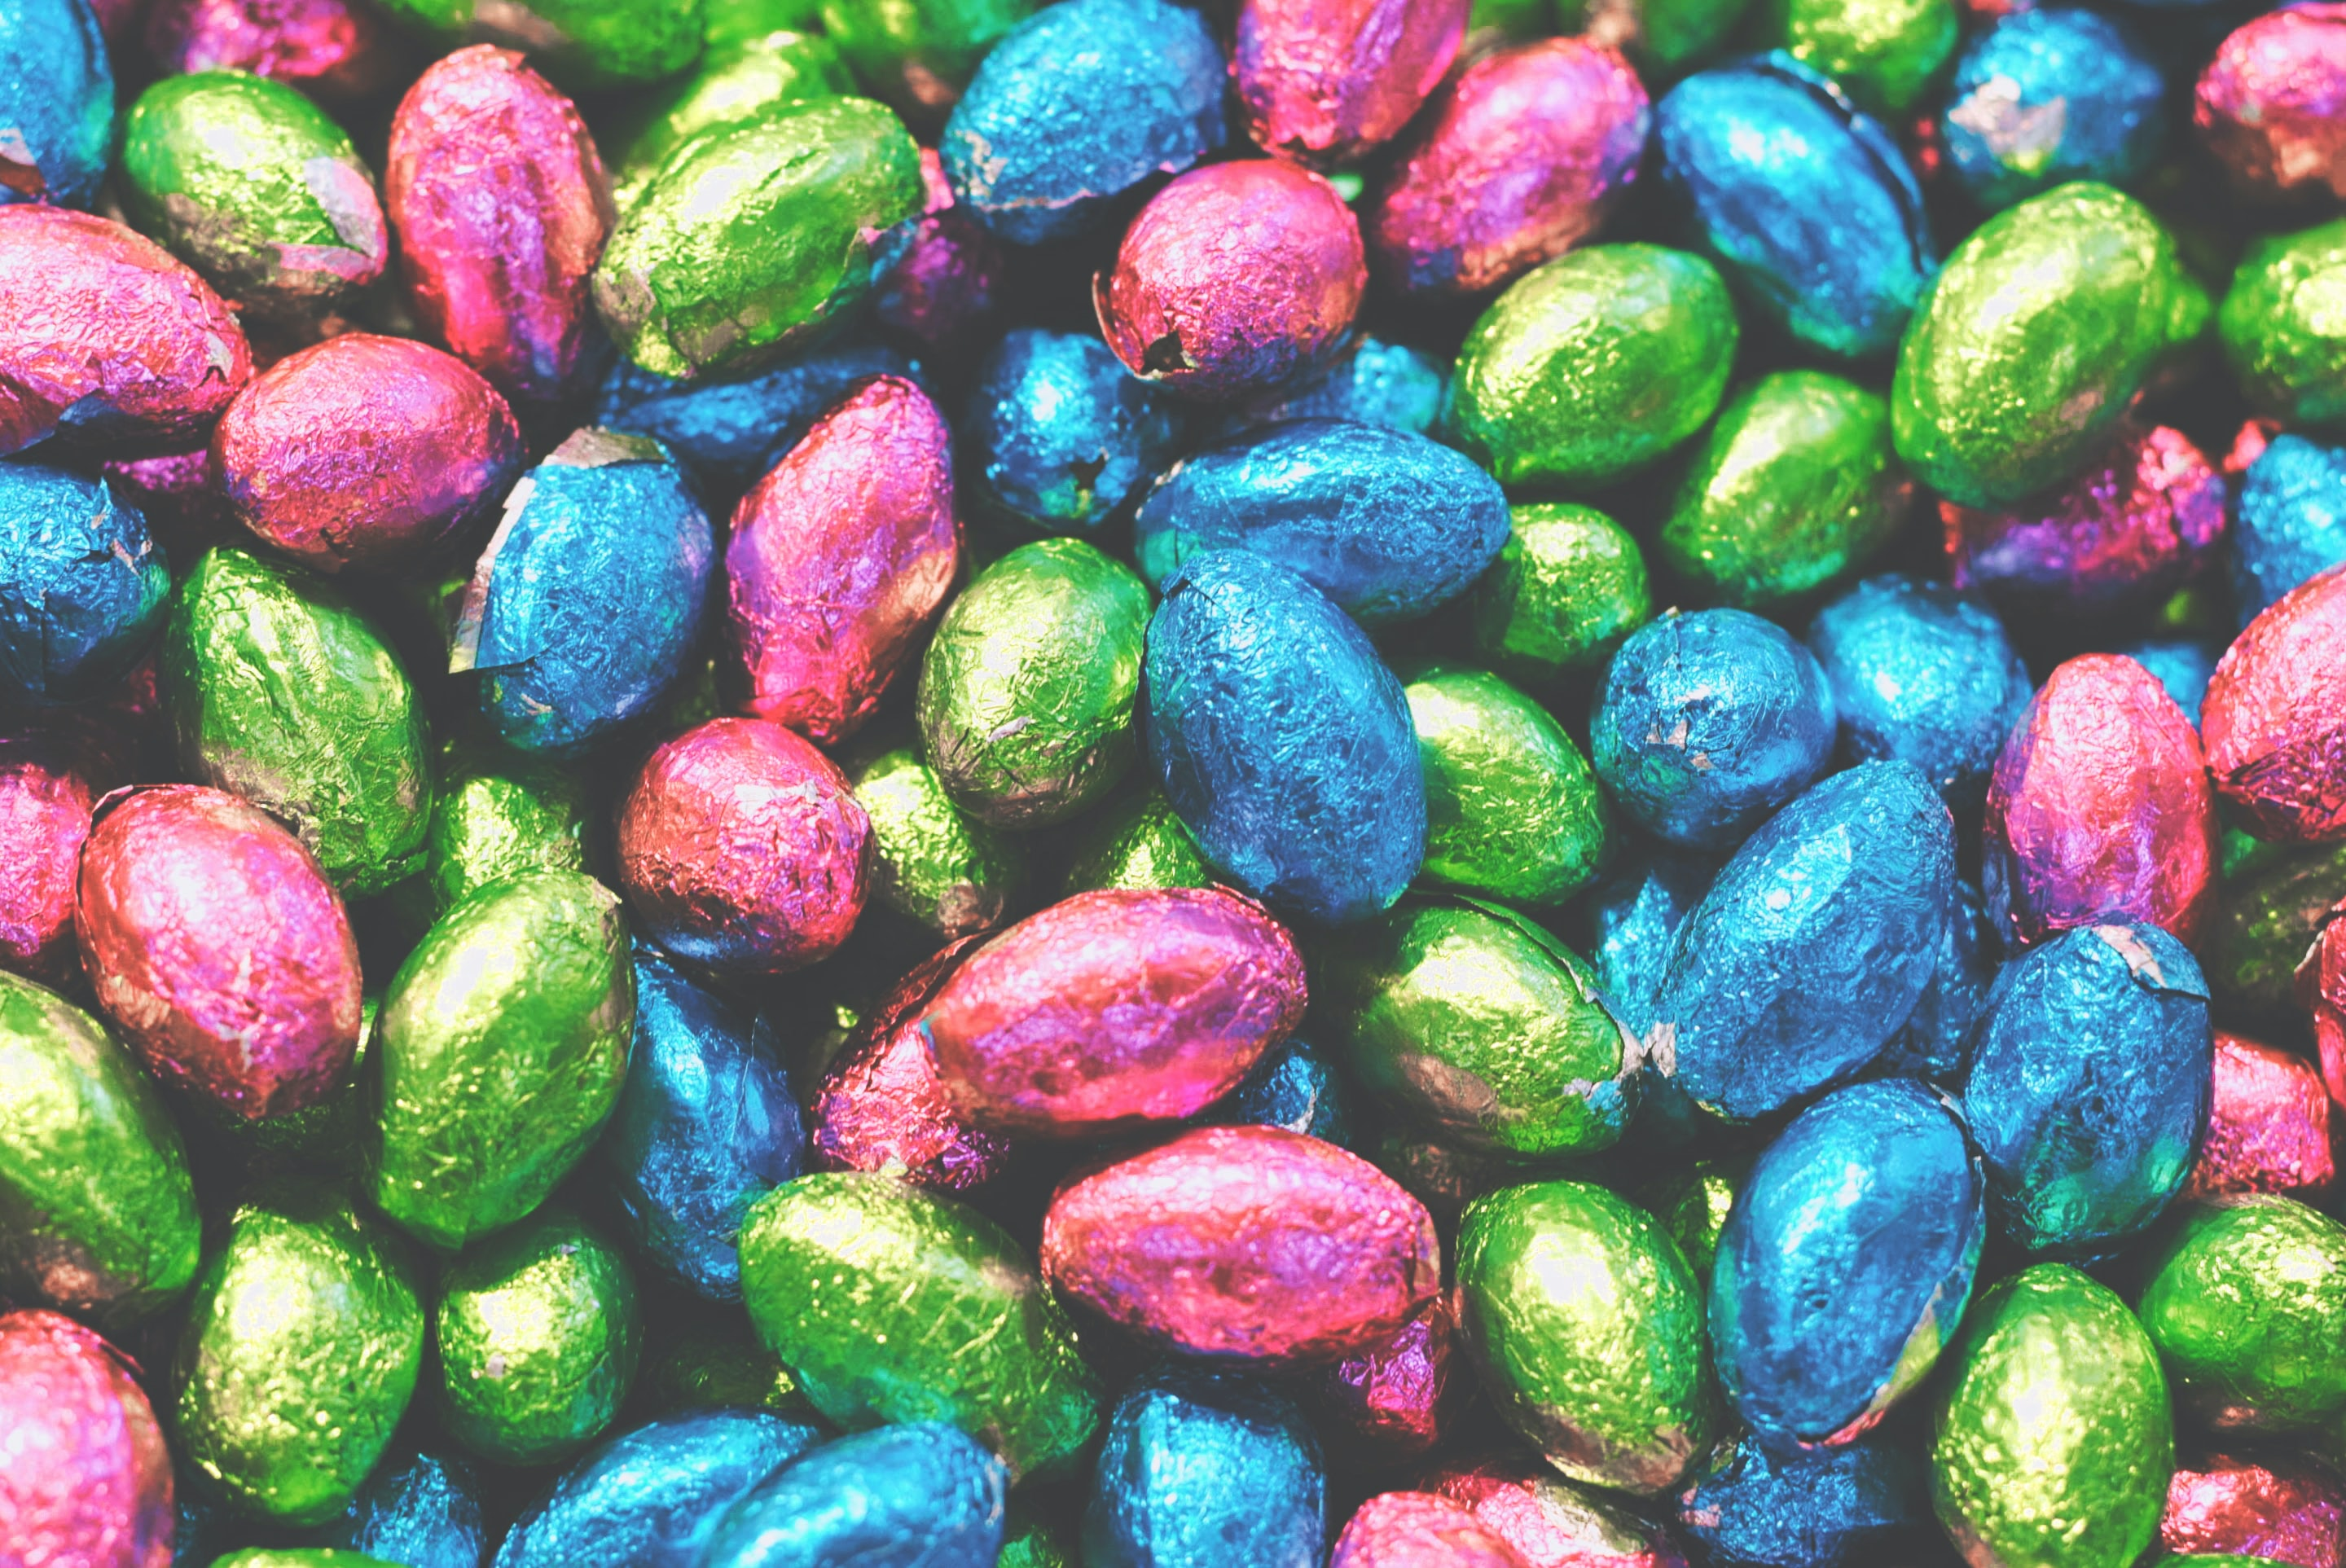 Pile of chocolate easter egg candy in colorful foil wrappers